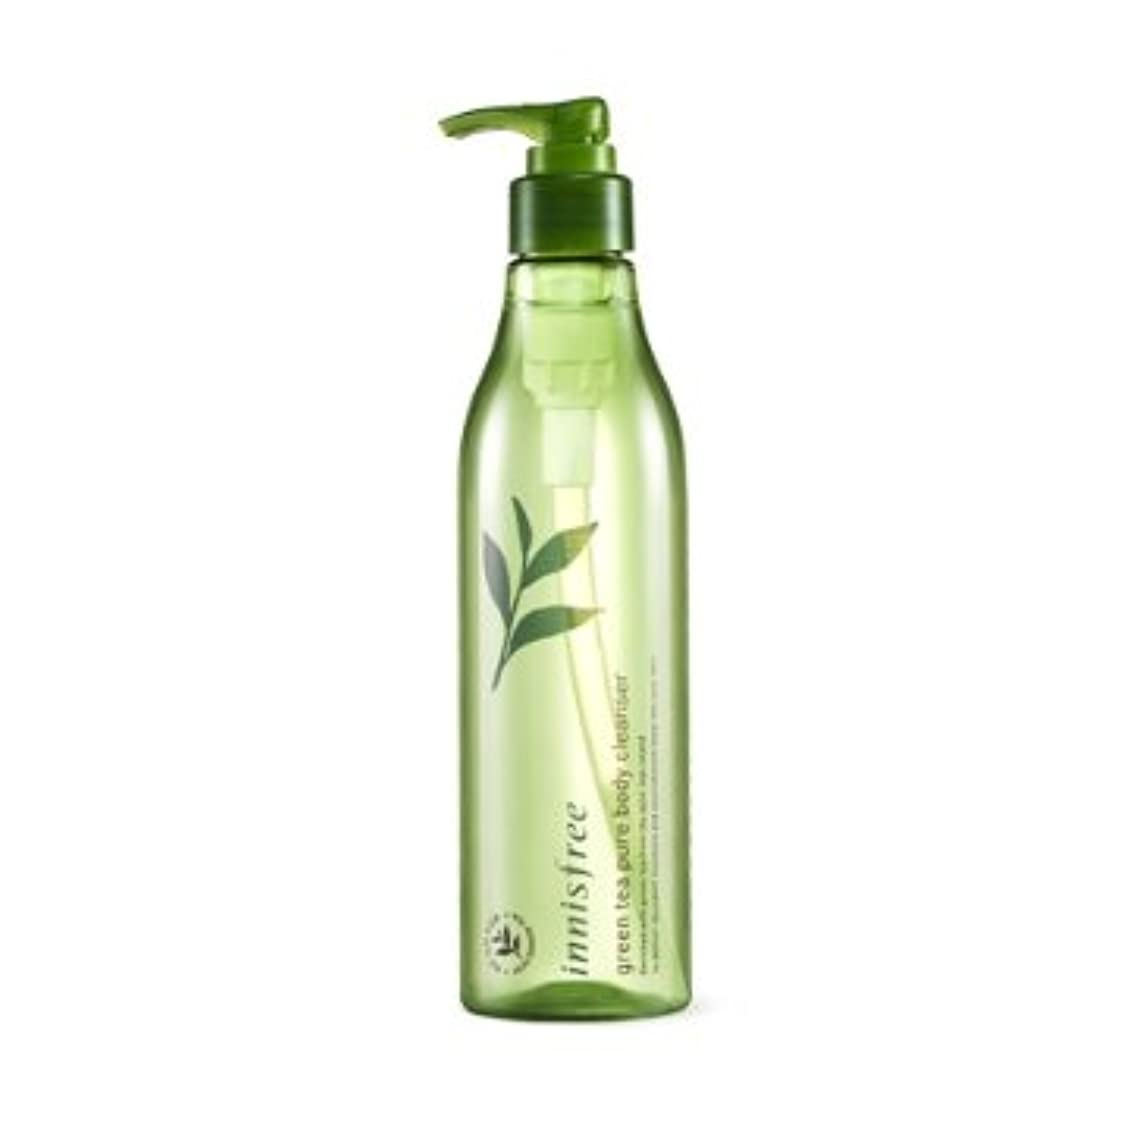 北へ呼吸ブラザー【イニスフリー】Innisfree green tea pure body cleanser - 300ml (韓国直送品) (SHOPPINGINSTAGRAM)